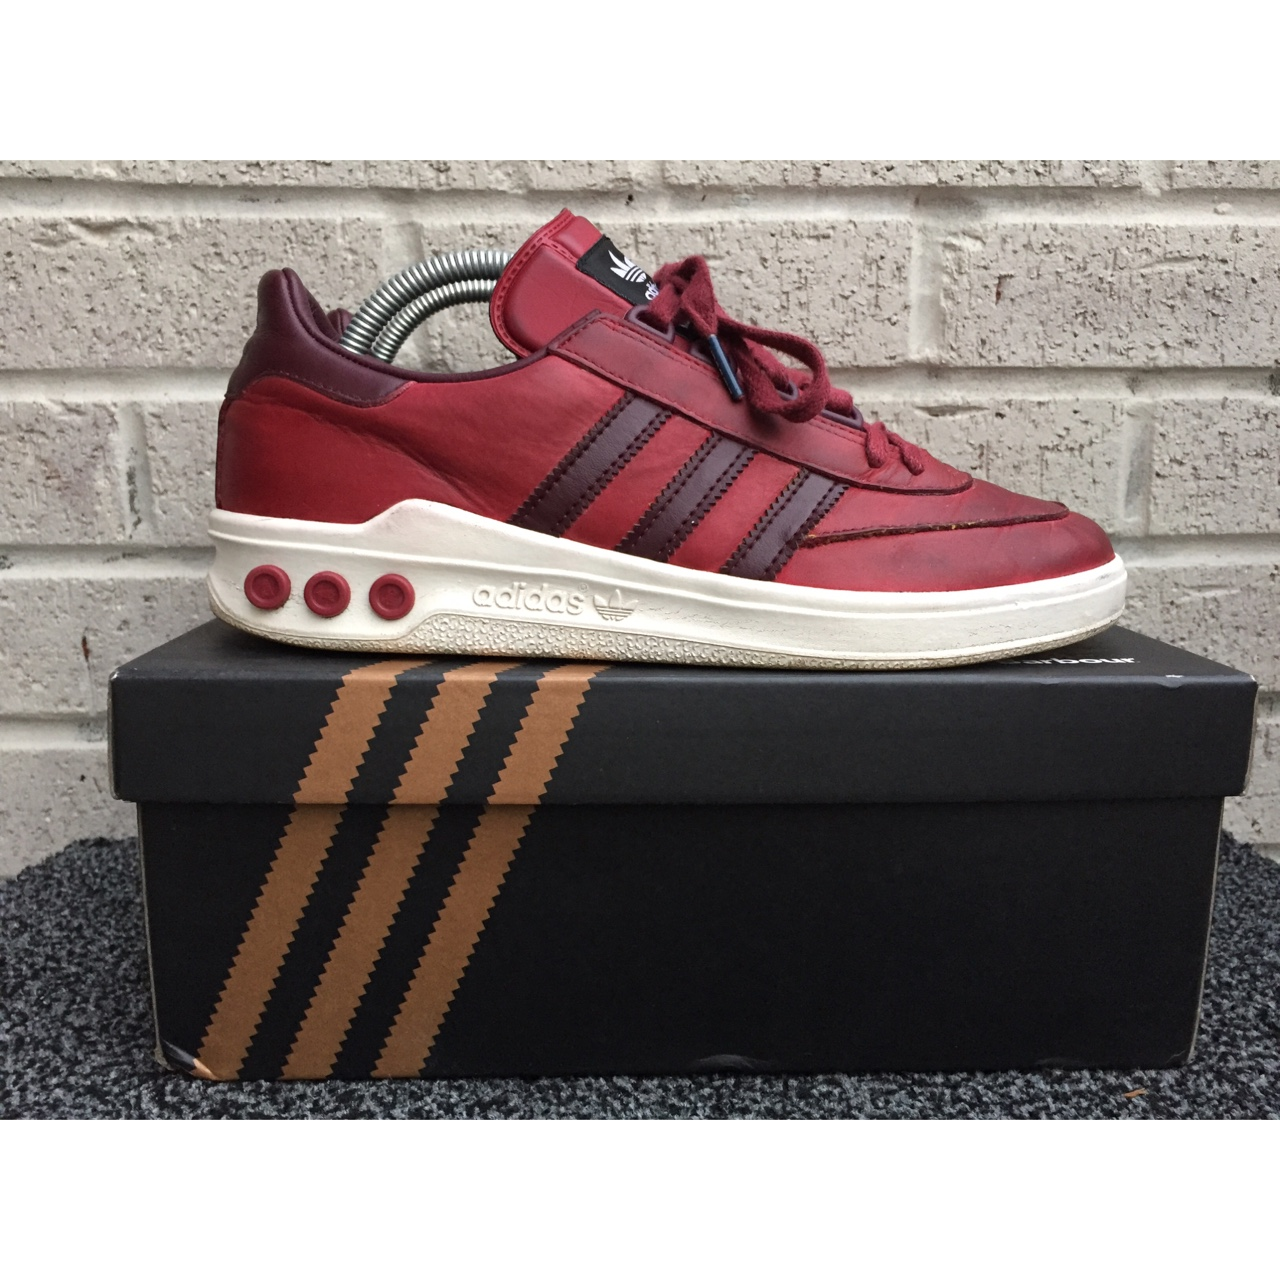 meet e522f a1827 Adidas Originals x Barbour 'Columbia' chilli red.... - Depop